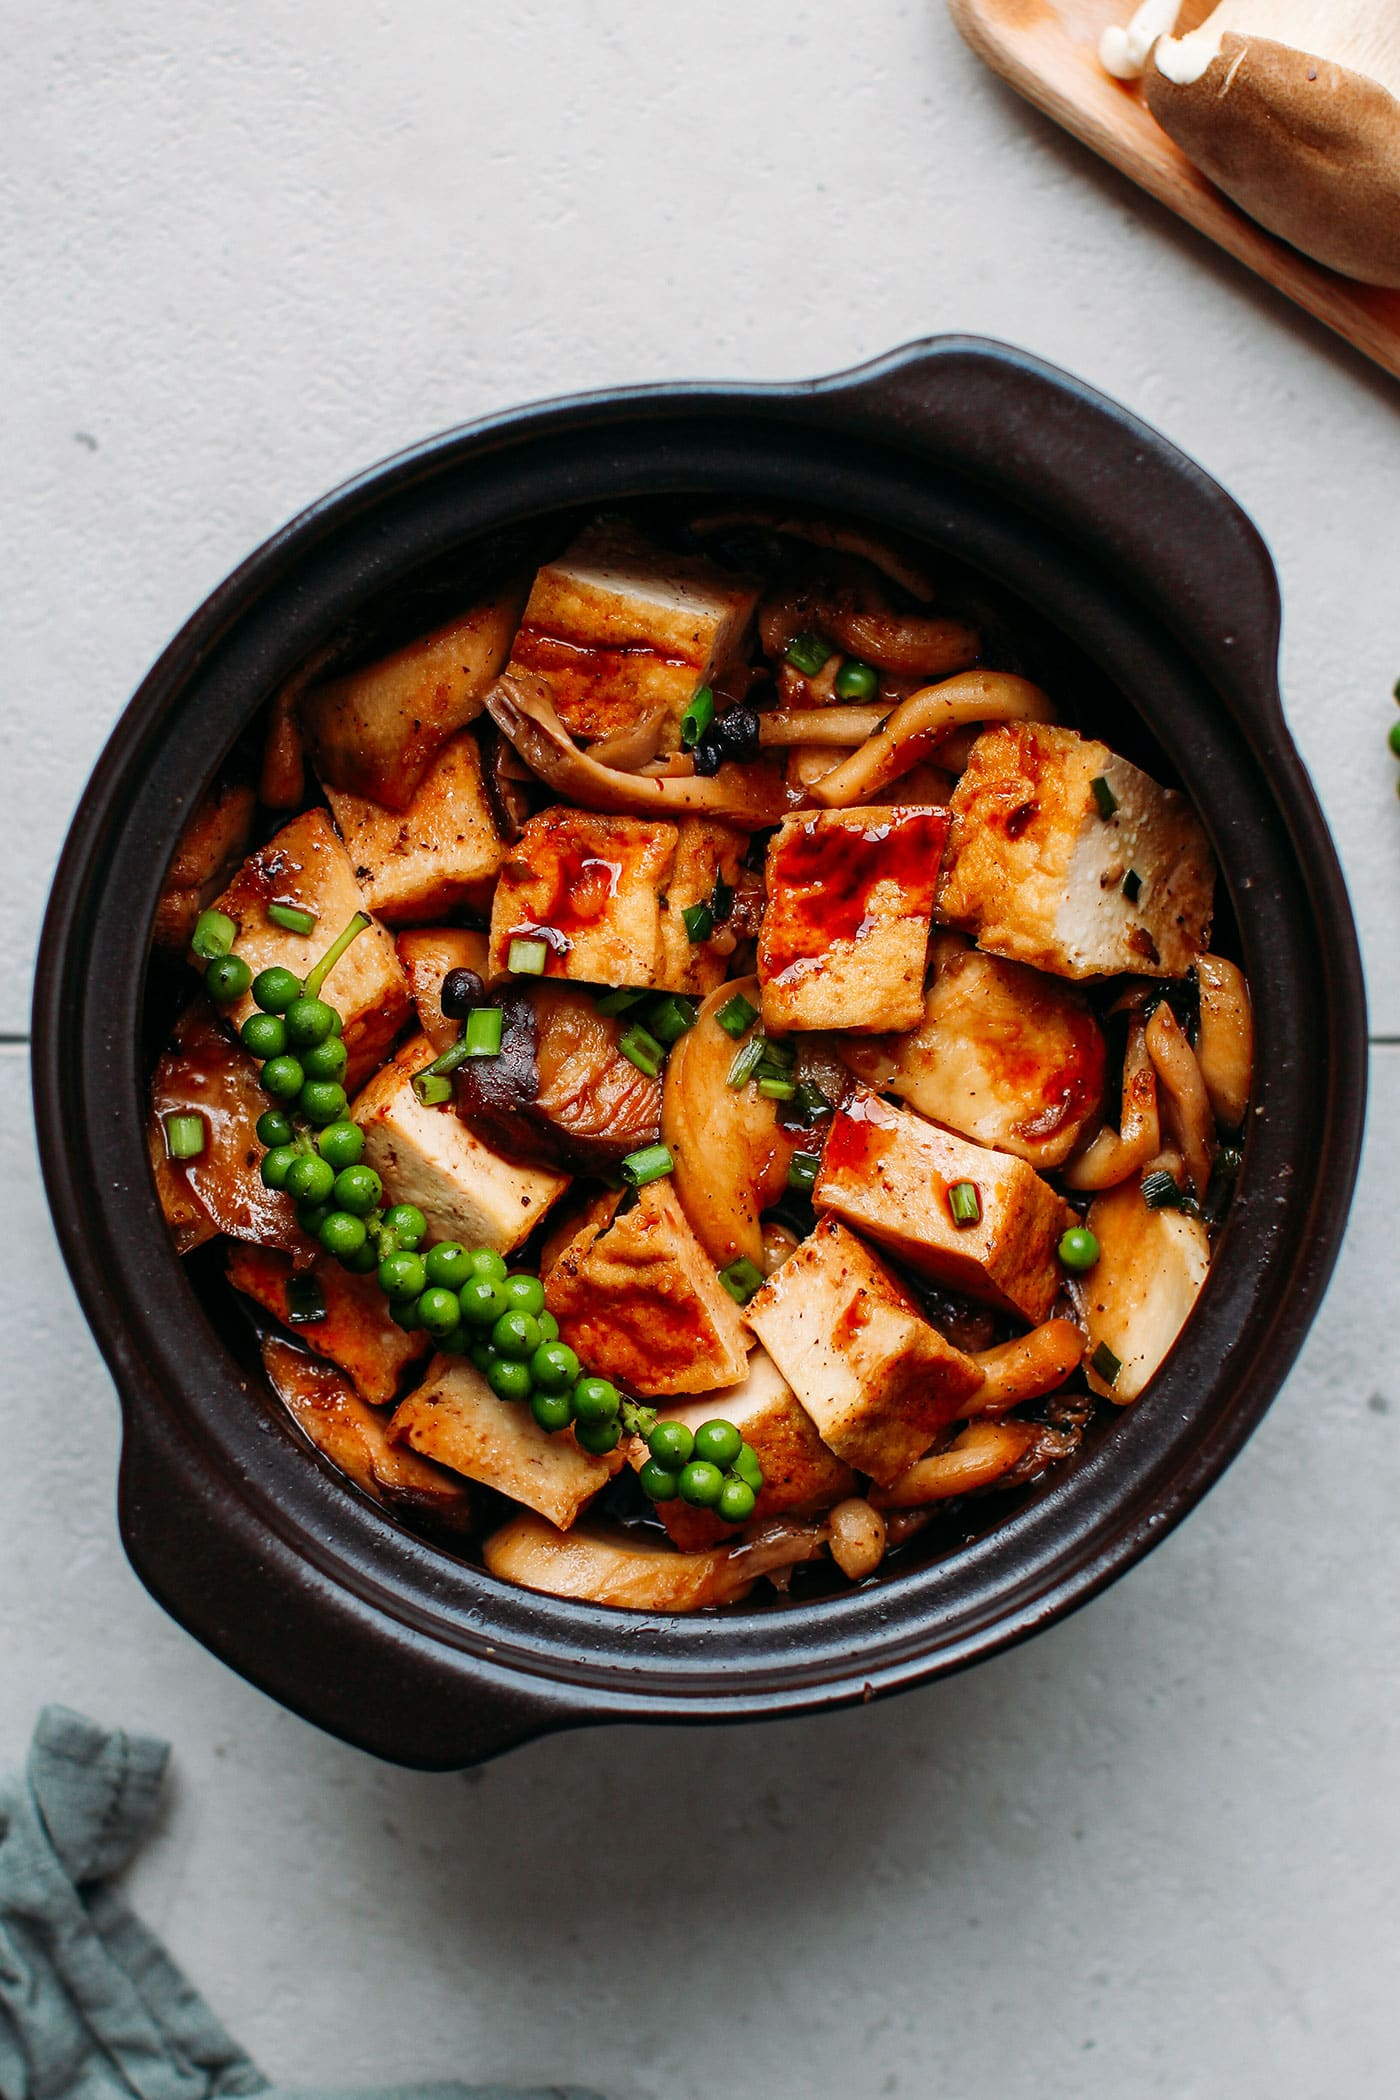 Braised Tofu & Mushrooms in Clay Pot